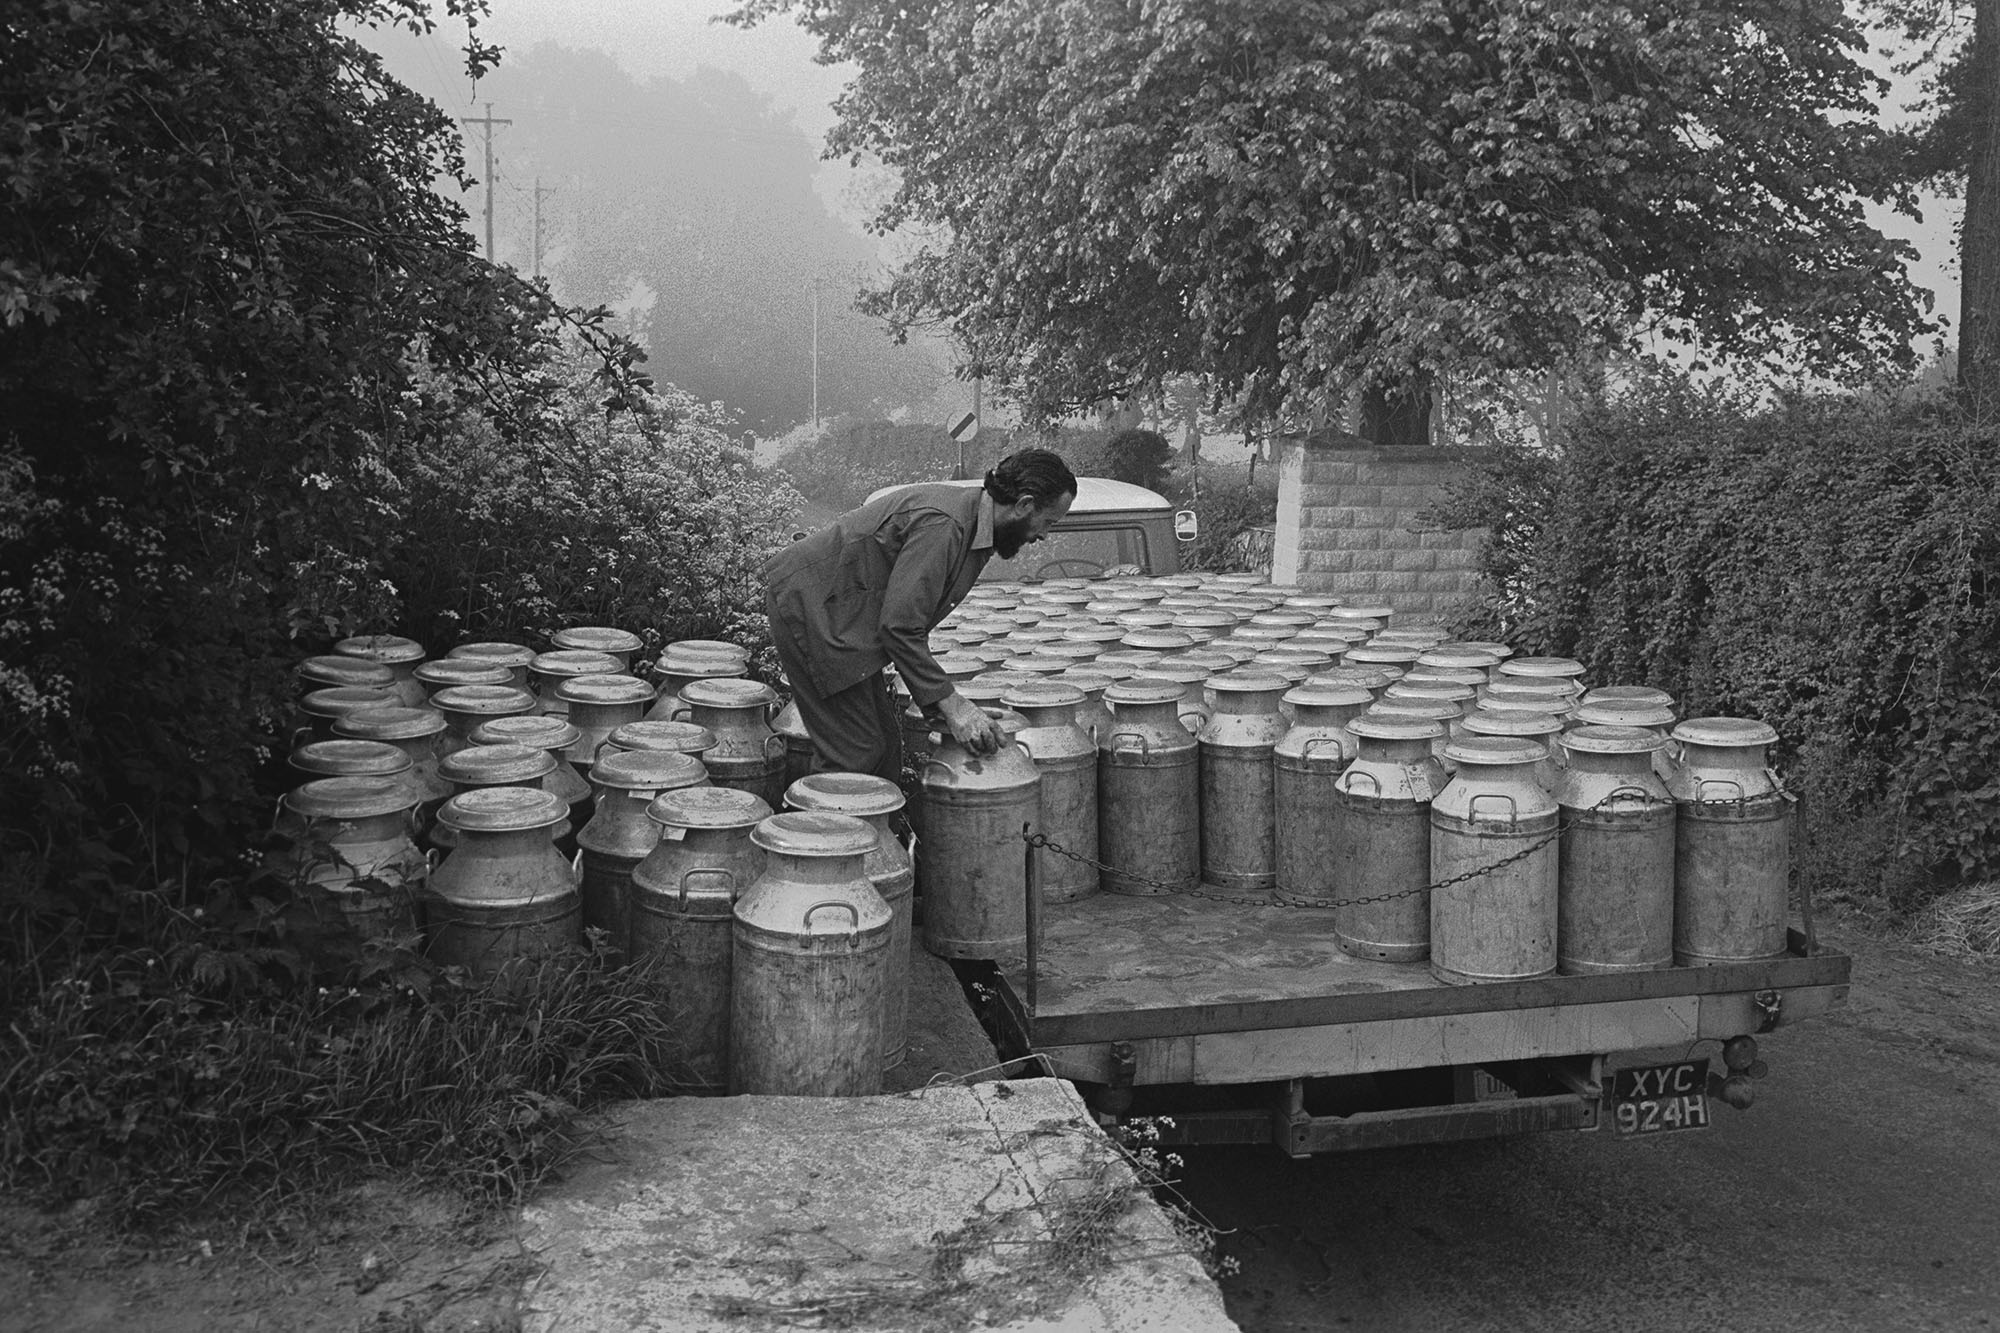 Man loading lorry with milk churns on to lorry from stand. <br /> [Fred Hooper, a milk lorry driver, loading milk churns onto his lorry from a stand in Sheepwash.]